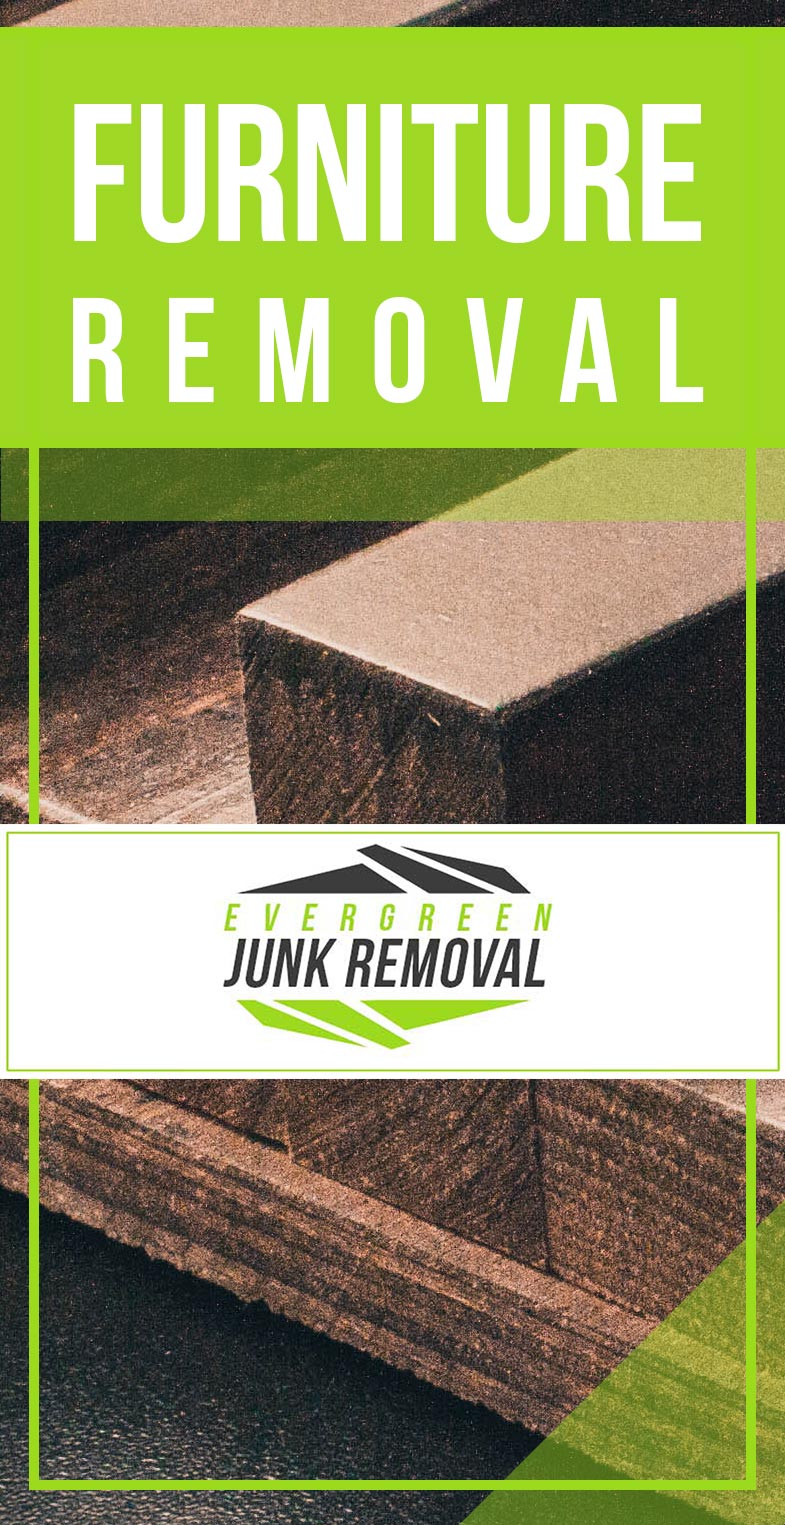 Puyallup Furniture Removal